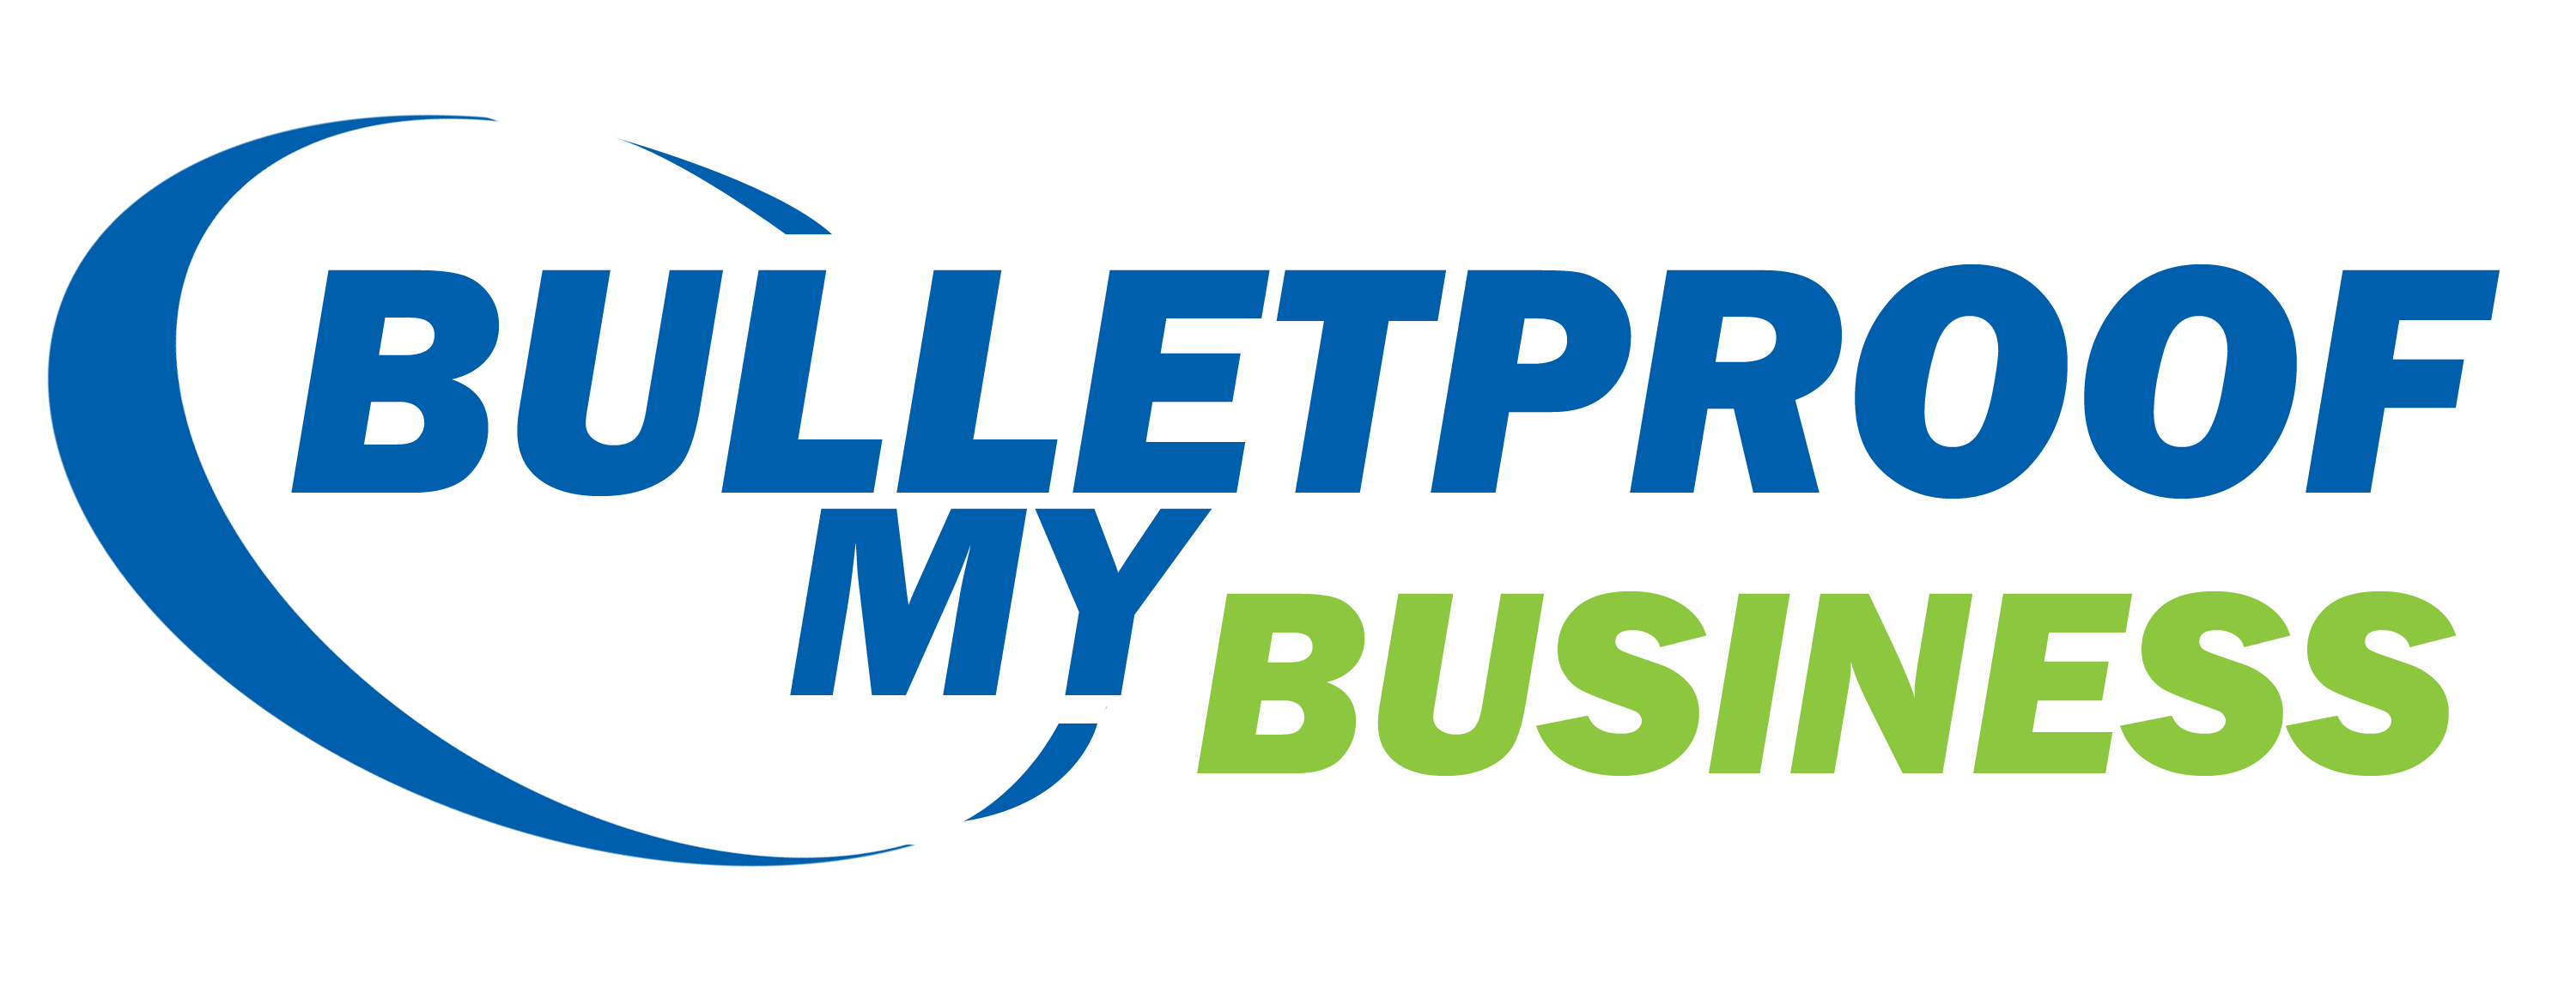 Bulletproof My Business logo